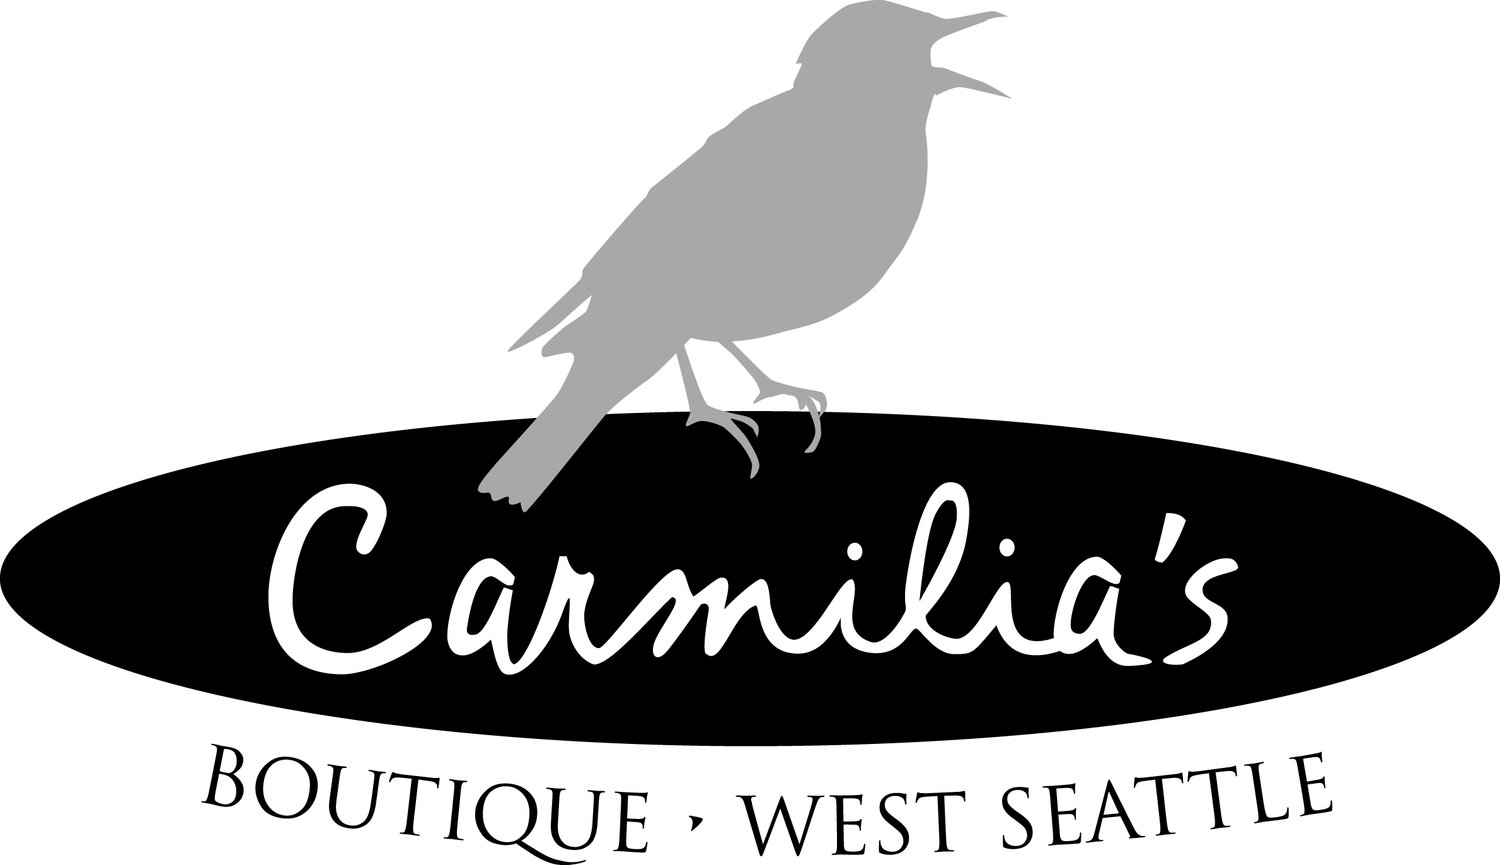 Carmilia's Boutique West Seattle